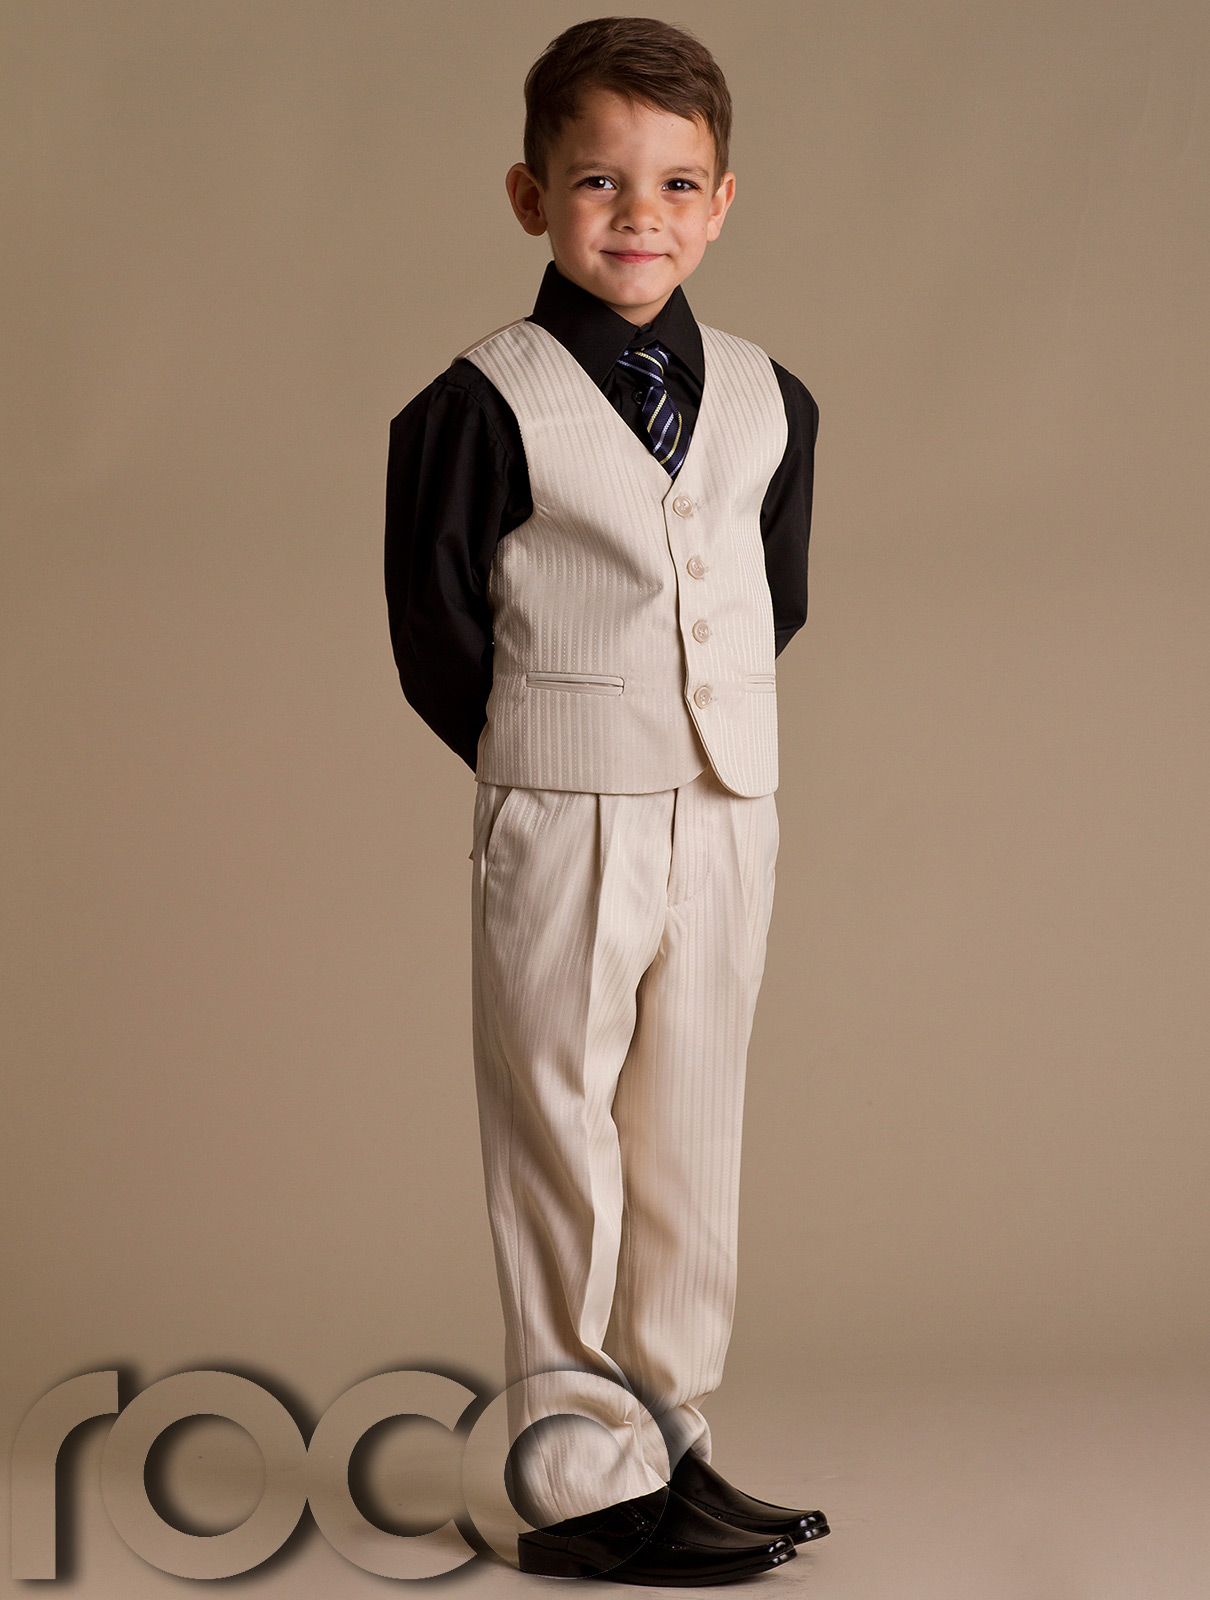 At Occasion Wear for Kids we specialize in boy's suits, ranging from 4 piece boys suits and 5 piece boys suits. We have a huge selection of designs in our Boys Wedding Outfits section with some very exclusive Boys Wedding Suits that cannot be found elsewhere.